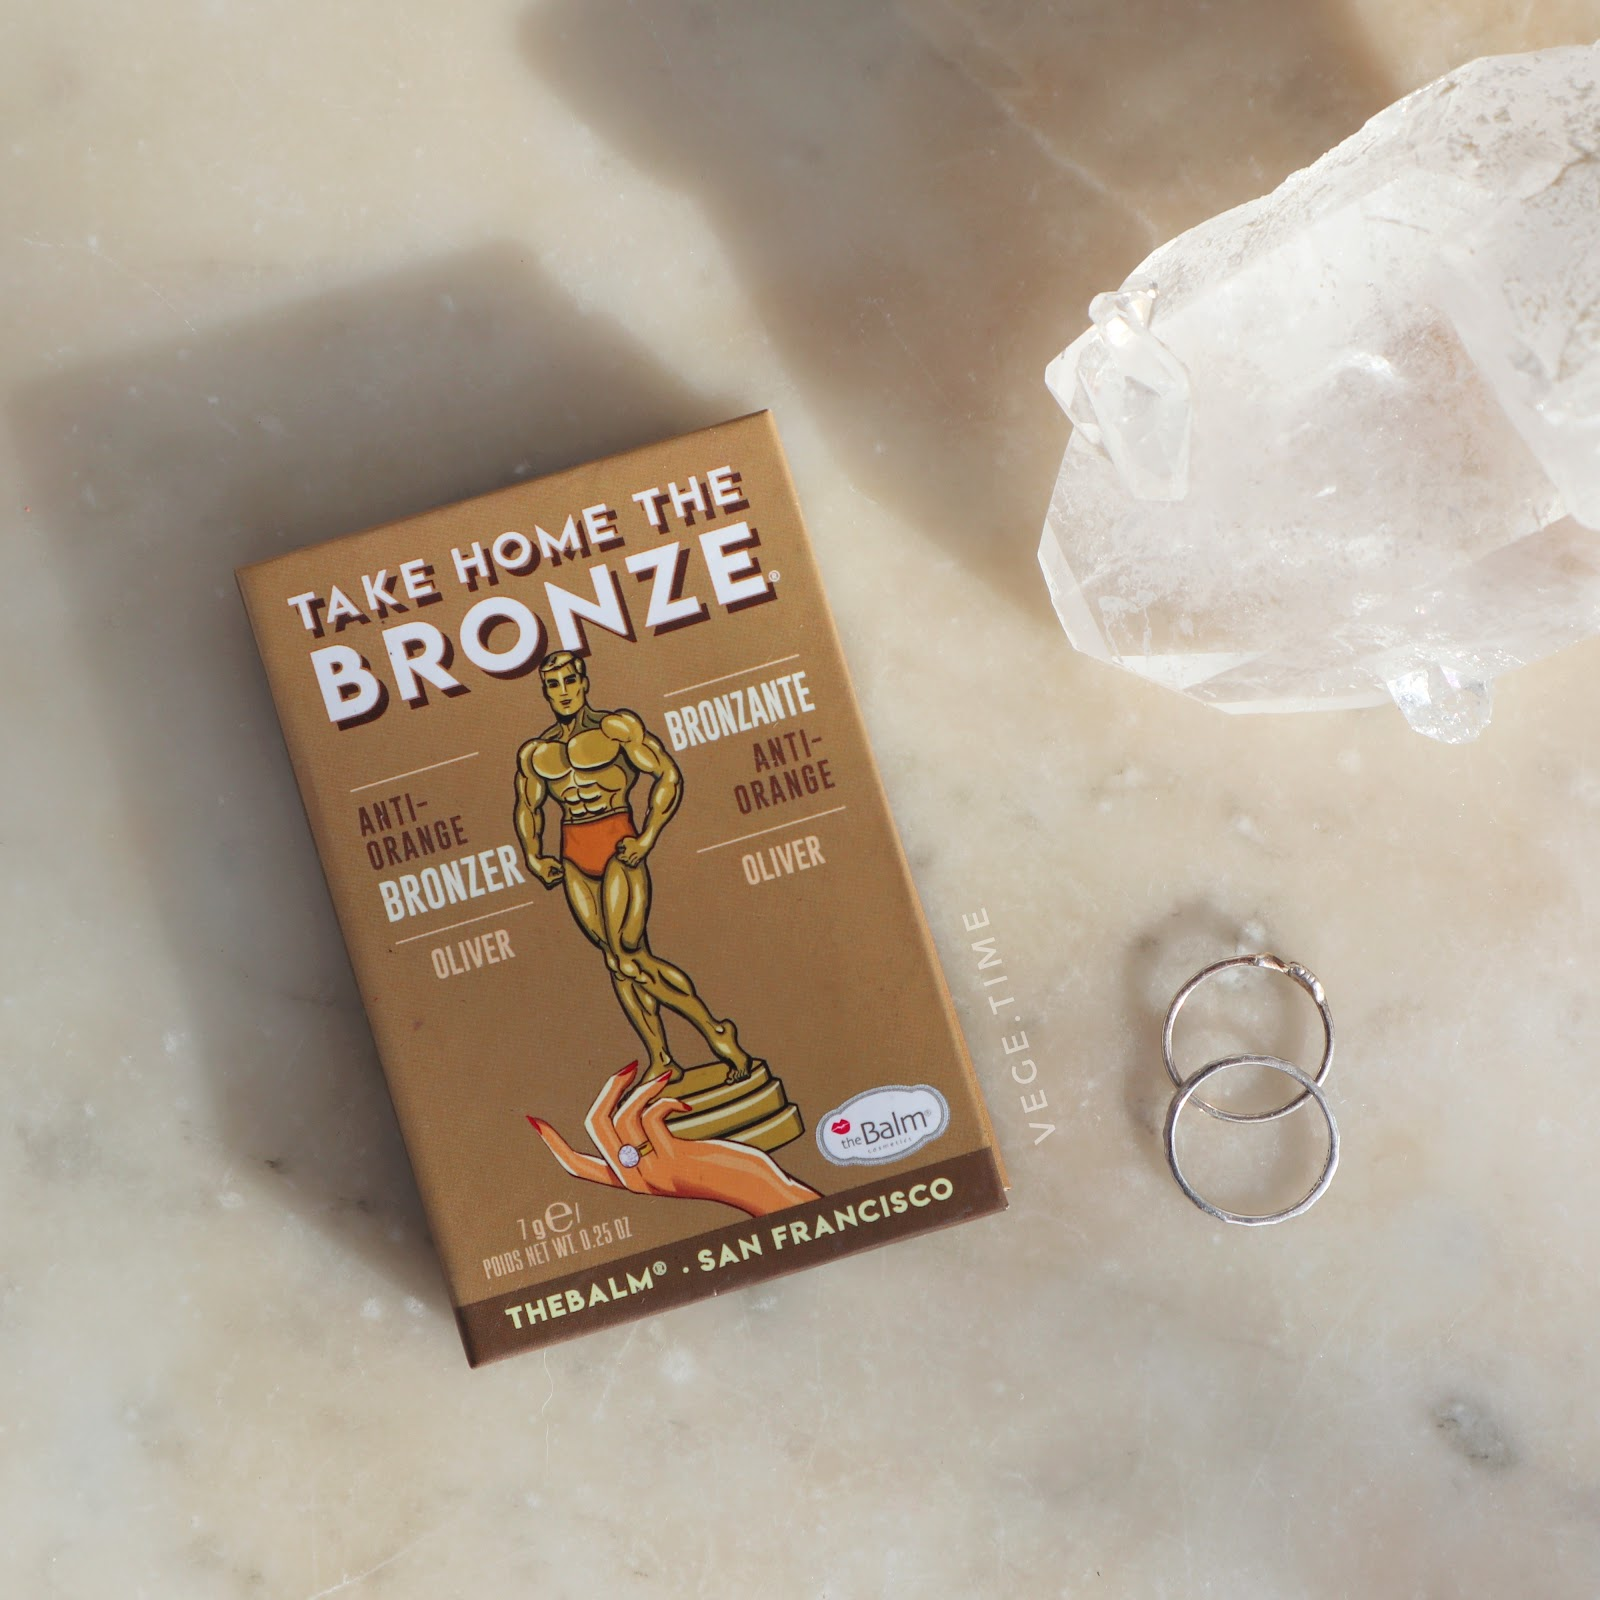 Vegan bronzer for light complexion? The Balm Take Home The Bronze Oliver